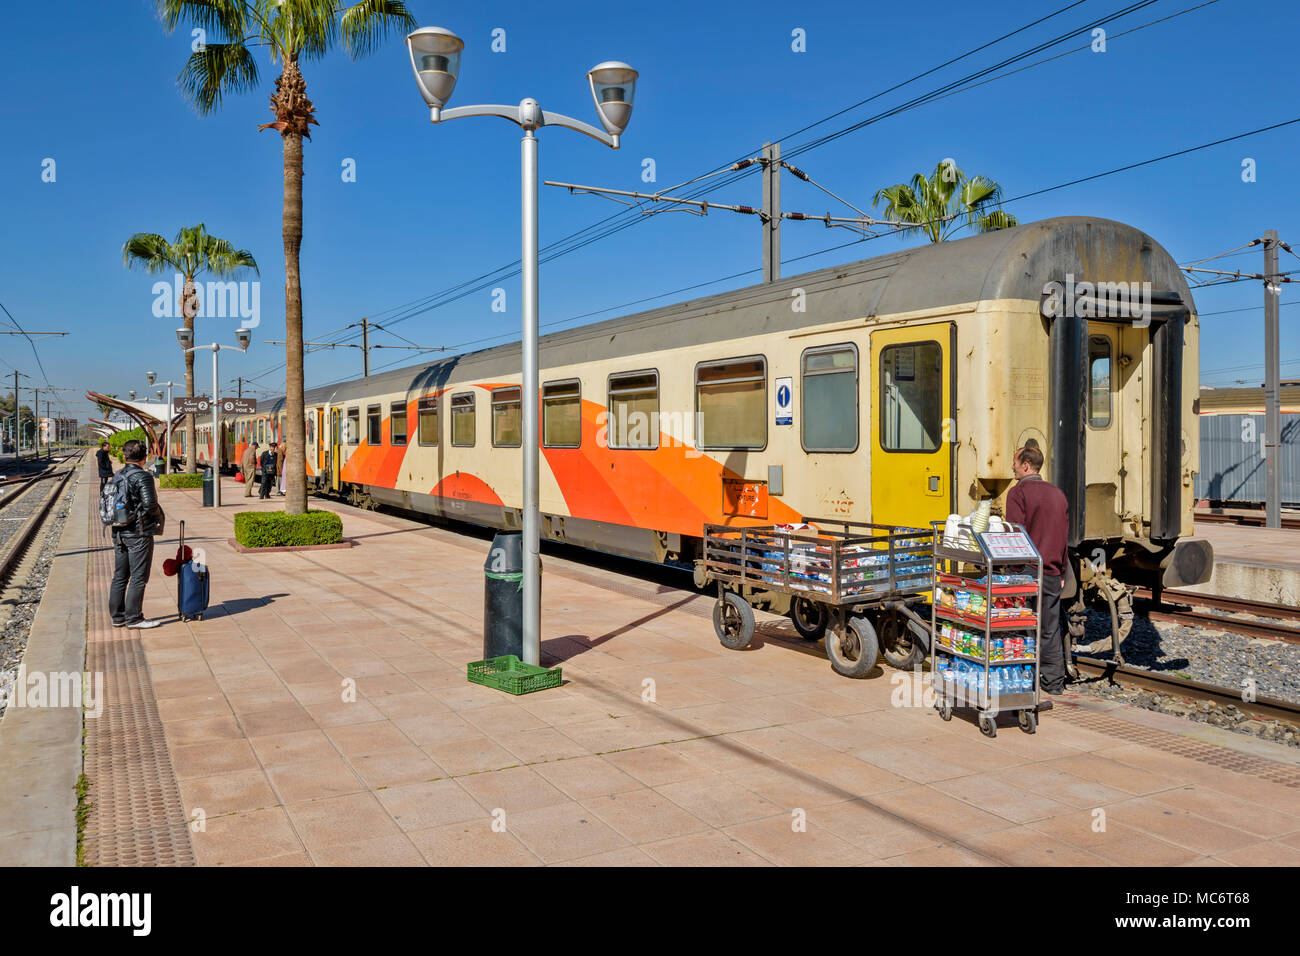 MOROCCO MARRAKECH RAILWAY STATION TRAIN WAITING AT PLATFORM WITH FIRST CLASS CARRIAGE LOADED WITH REFRESHMENTS - Stock Image